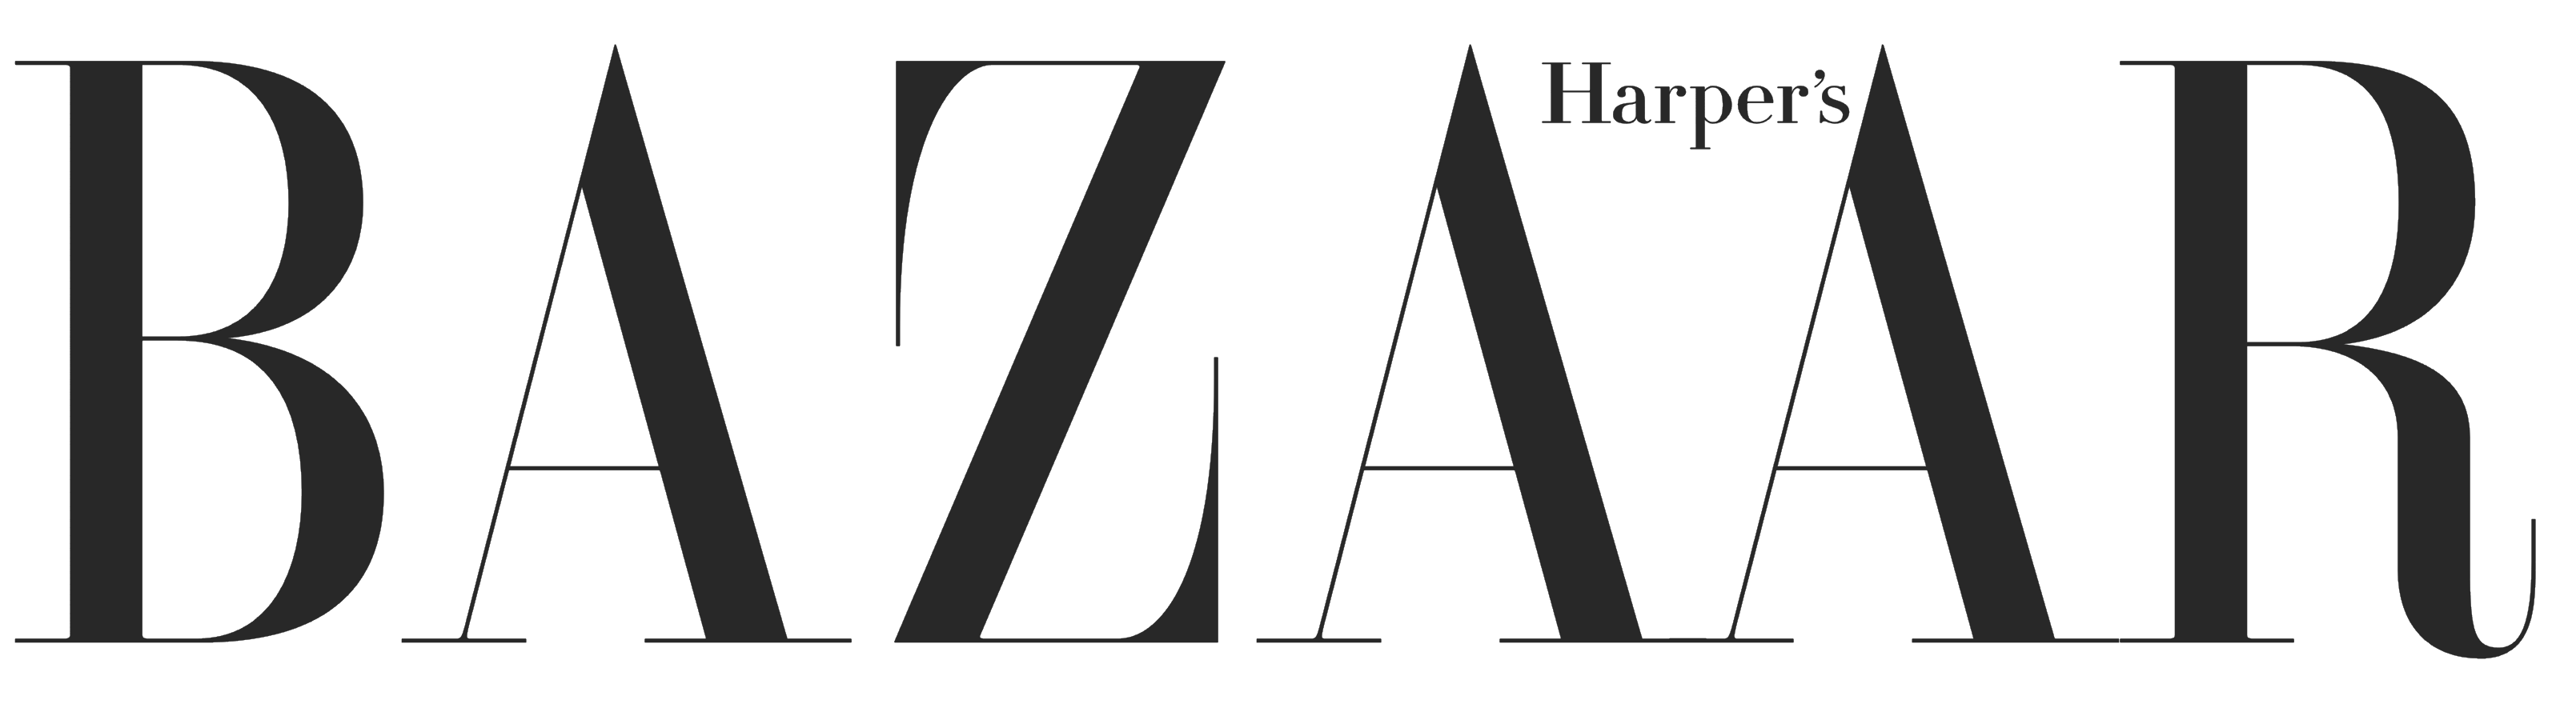 Image result for harper's bazaar uk logo